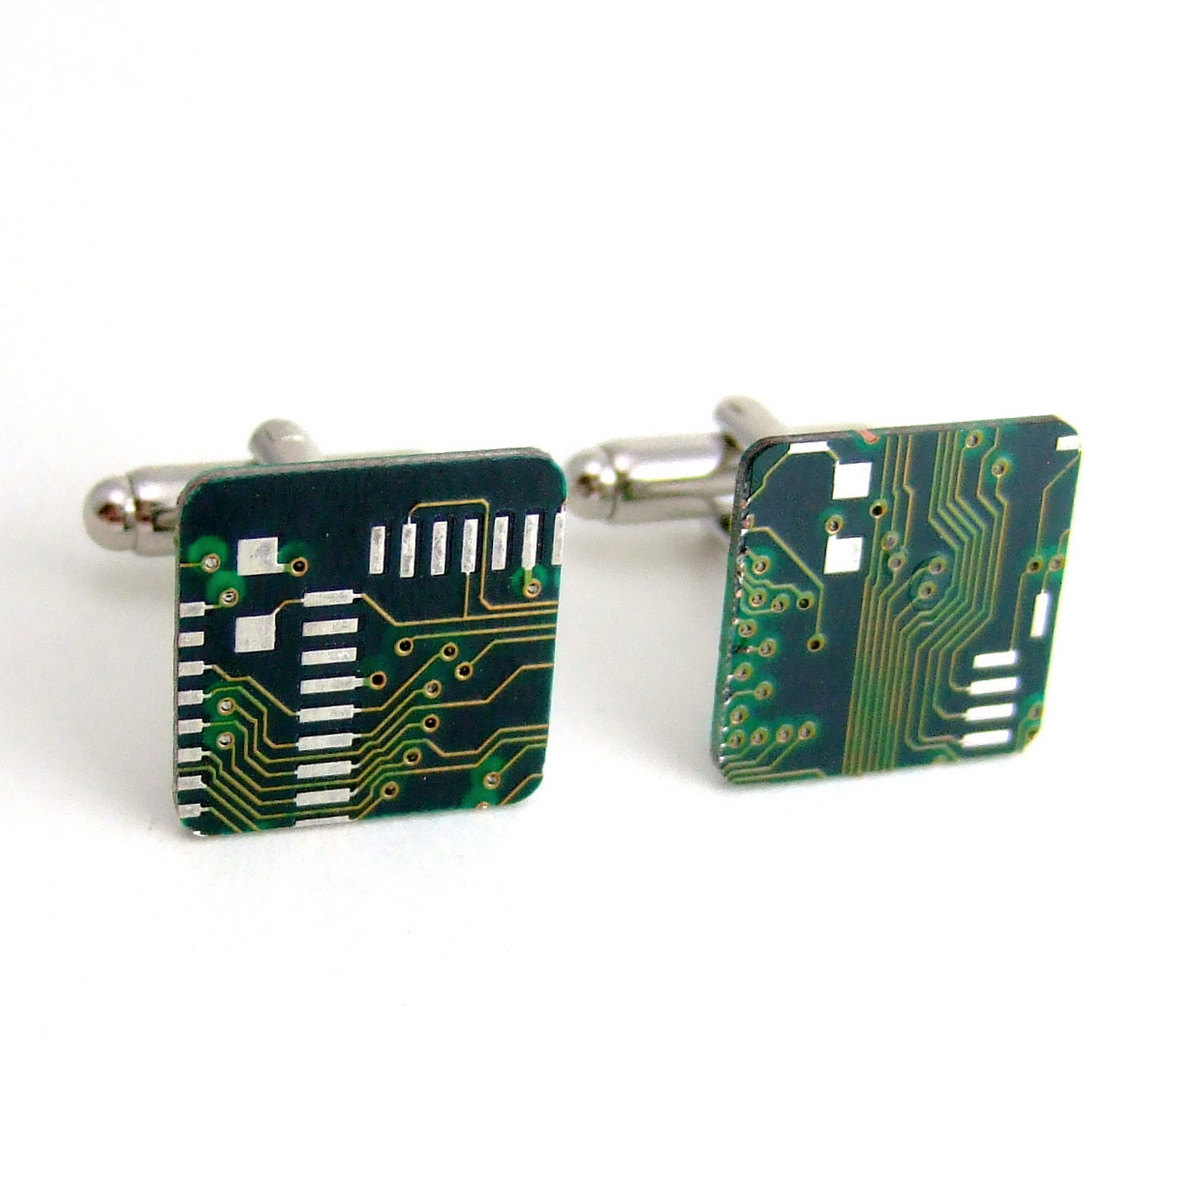 Techy-grooms-circuit-board-cuff-links.original